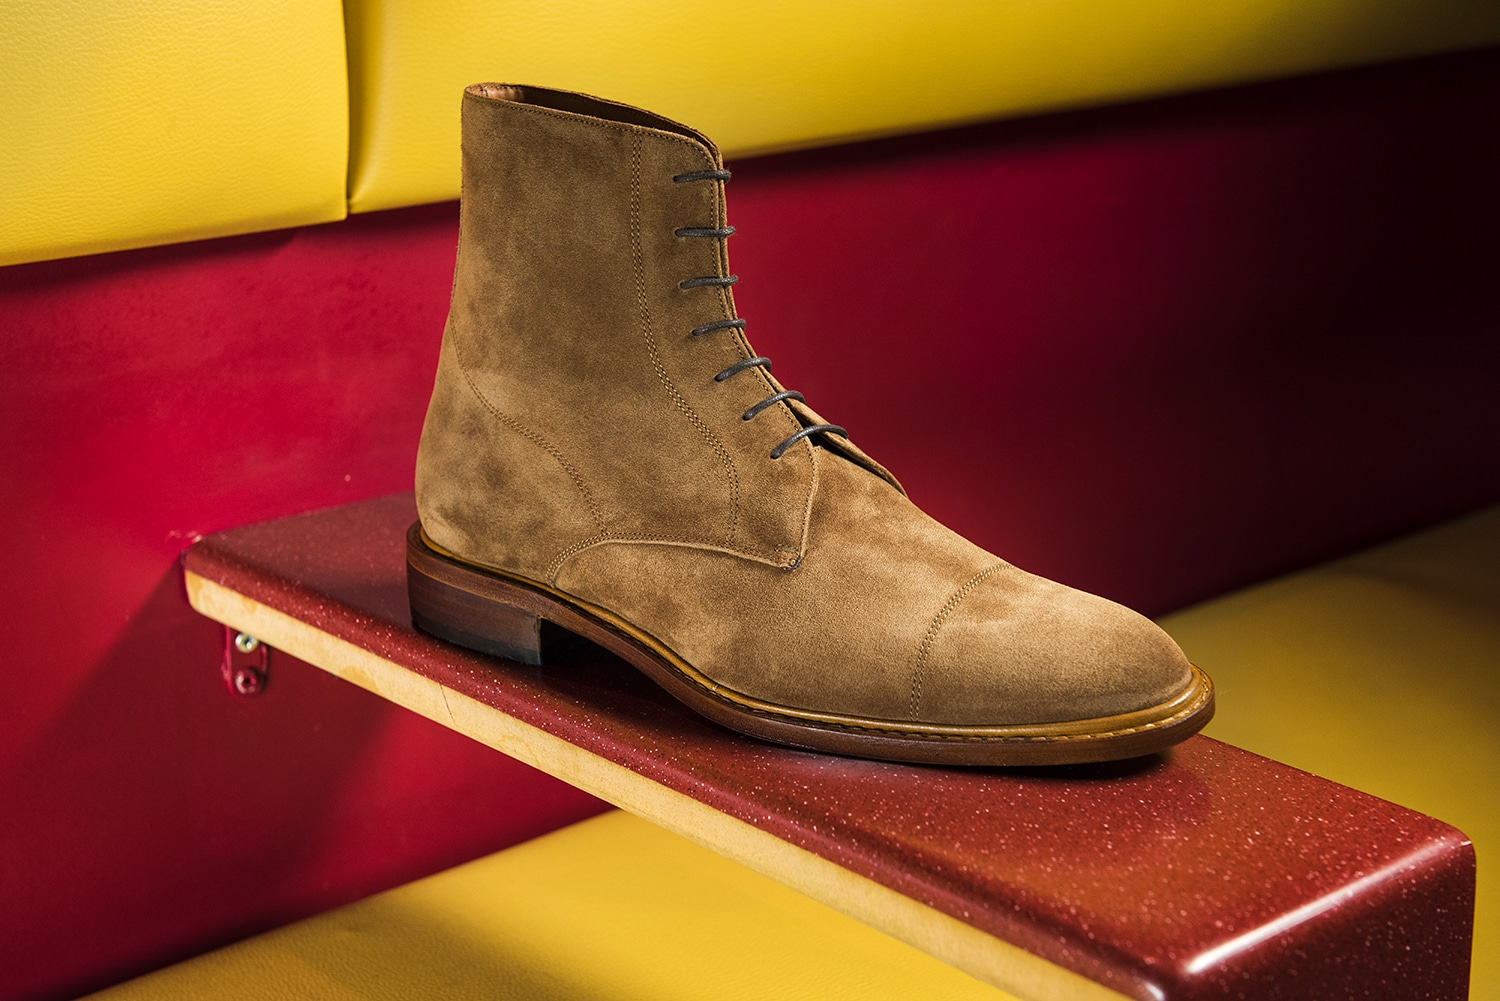 cbnoisette - Work boots, City Boots & chukkas : 6 nouvelles versions